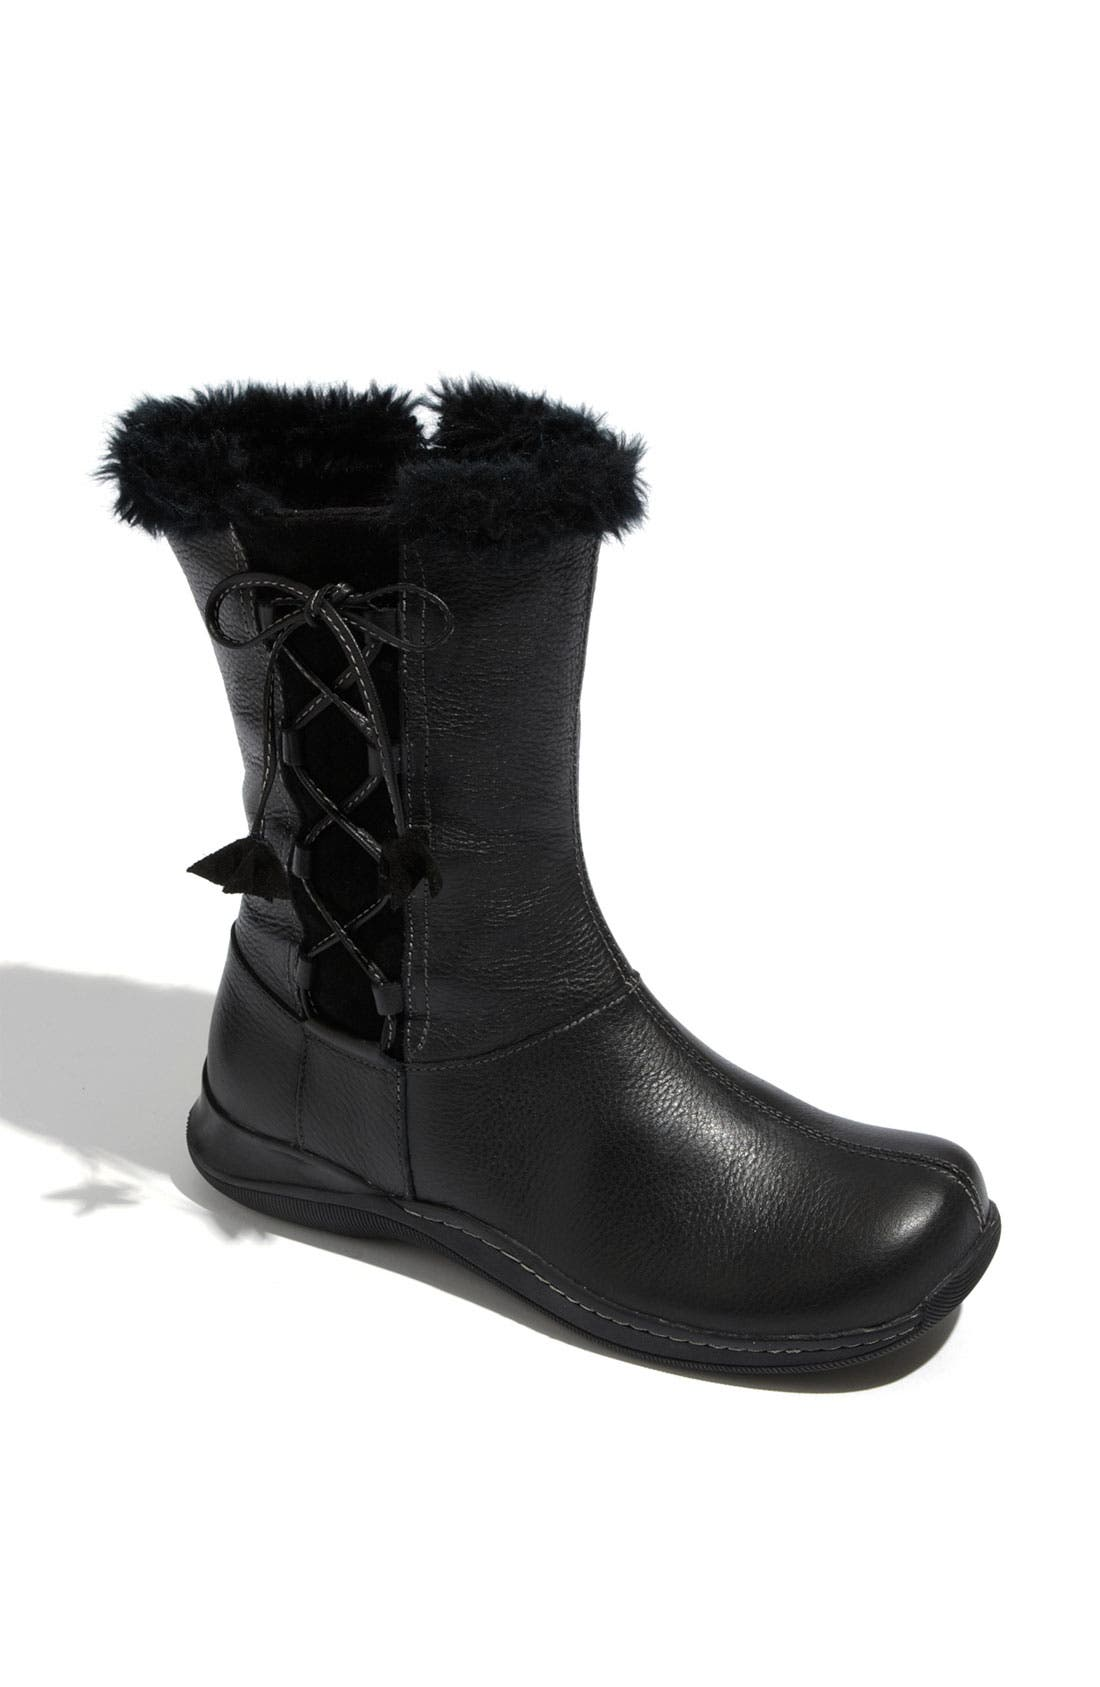 Alternate Image 1 Selected - SoftWalk® 'Roxy' Boot